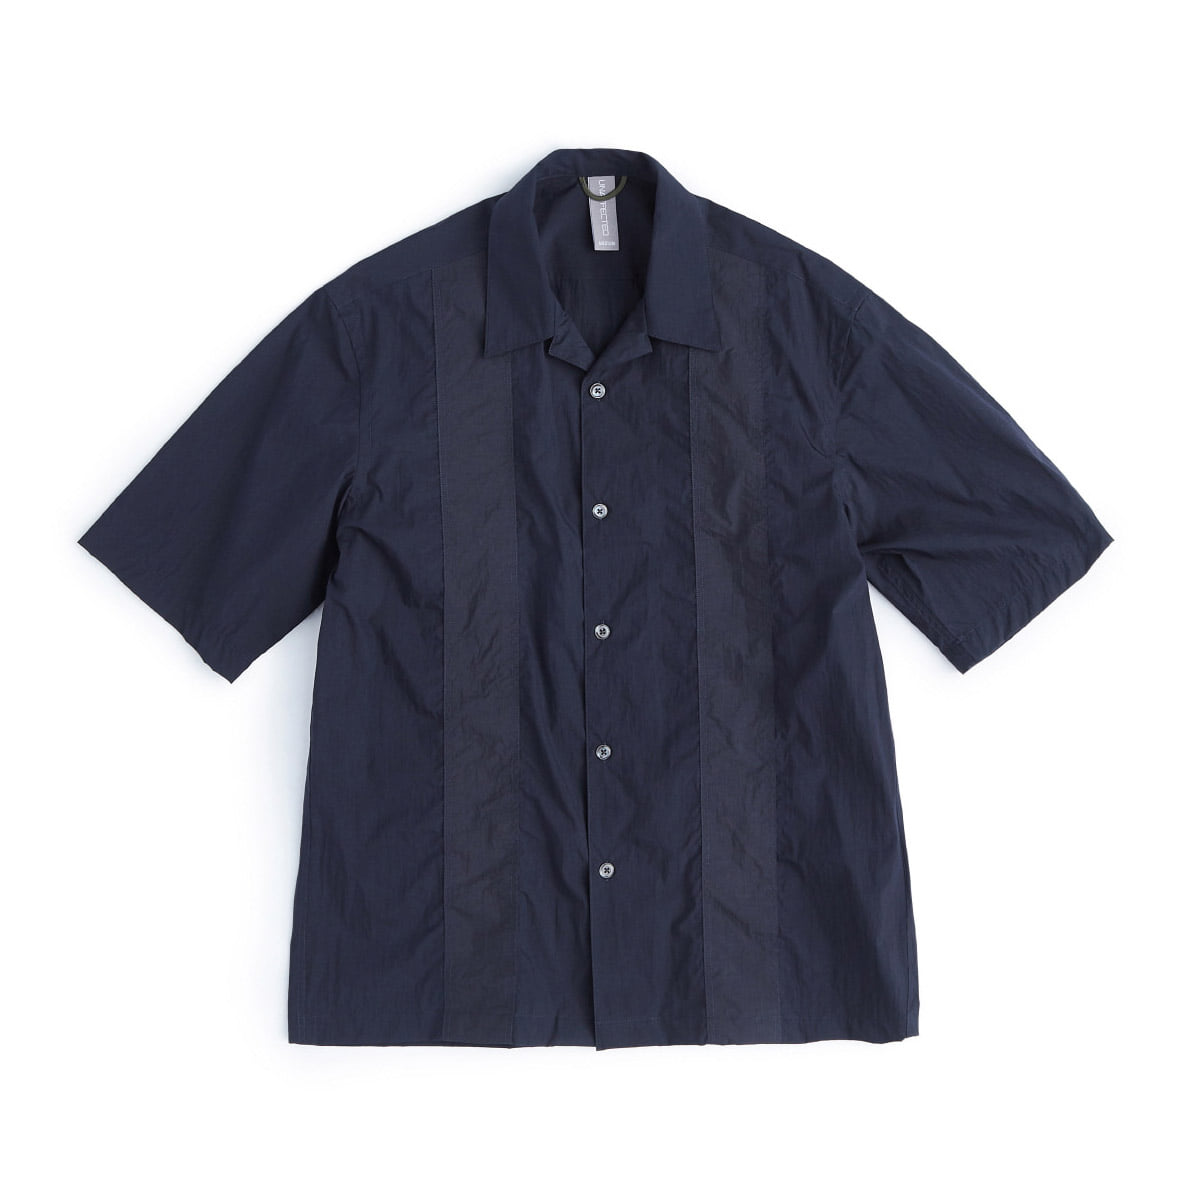 [UNAFFECTED] COLOR BLOCKED SHIRT 'NAVY'